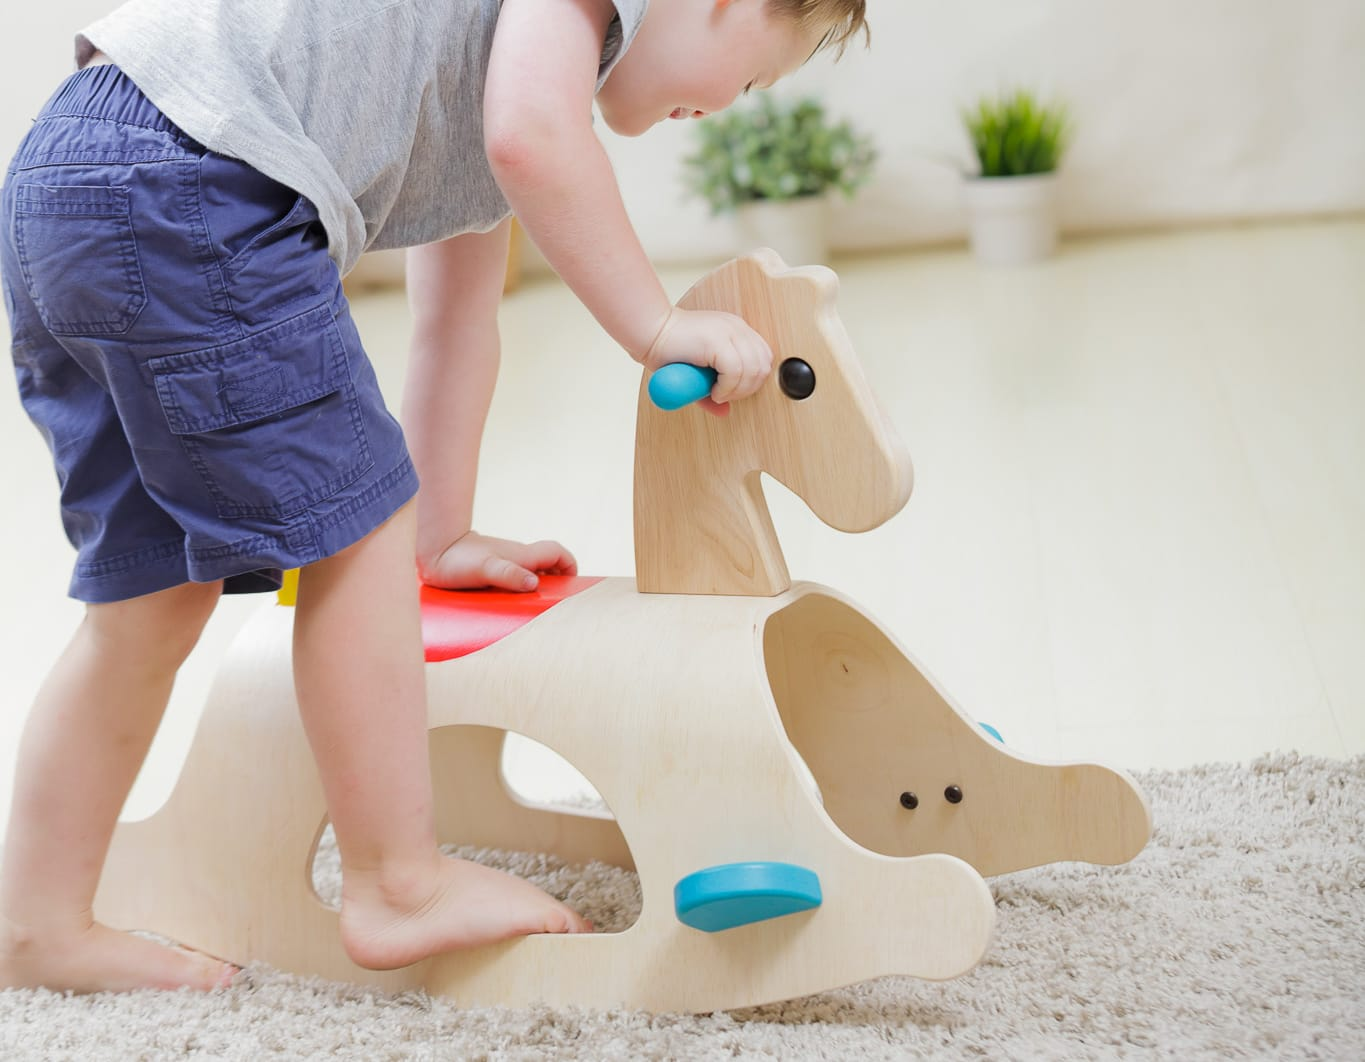 3403_PlanToys_PALOMINO_Active_Play_Gross_Motor_Coordination_Imagination_Language_and_Communications_2yrs_Wooden_toys_Education_toys_Safety_Toys_Non-toxic_0.jpg